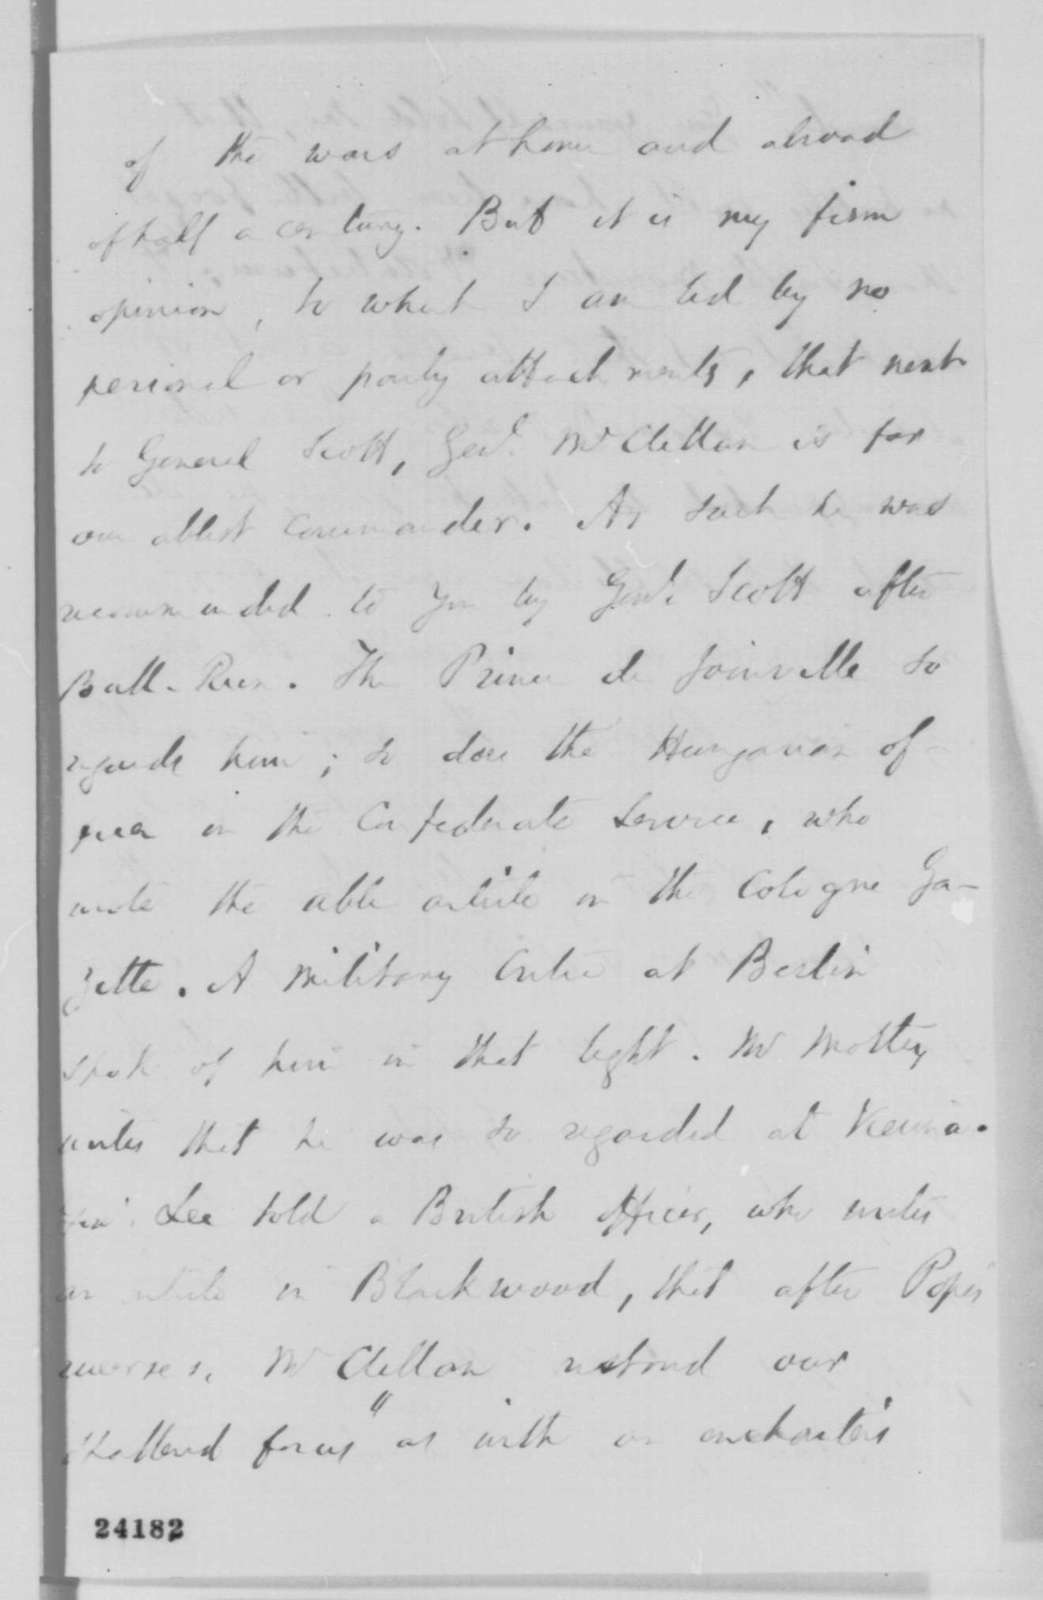 Edward Everett to Abraham Lincoln, Tuesday, June 16, 1863  (Praise for Lincoln's letter to Erastus Corning and recommendation that McClellan be restored to command)